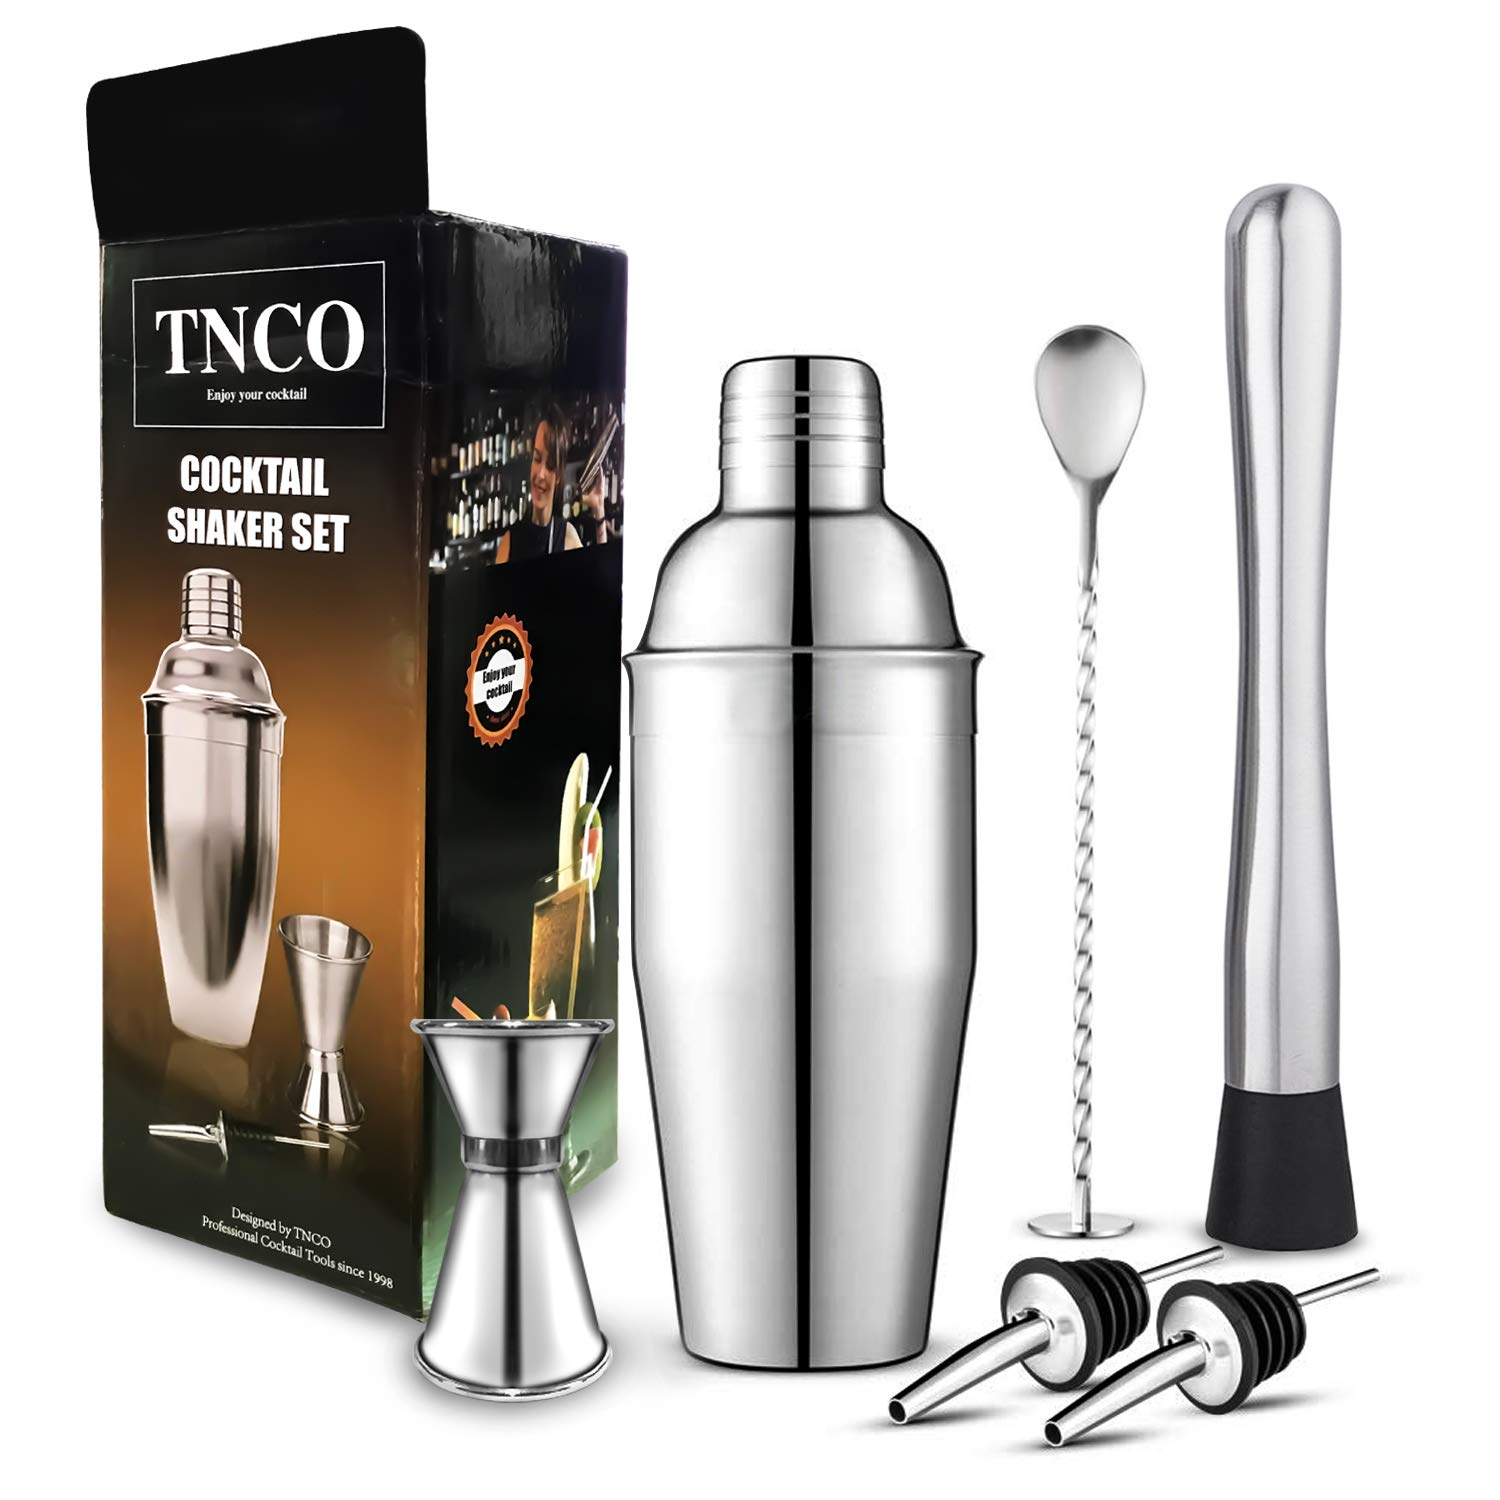 LUCKWET Cocktail Shaker Set: 24 Oz Stainless Steel Martini Shaker With Measuring Jigger, Mixing Spoon,Muddle,2 liquor pourers,Professional Kit Gift